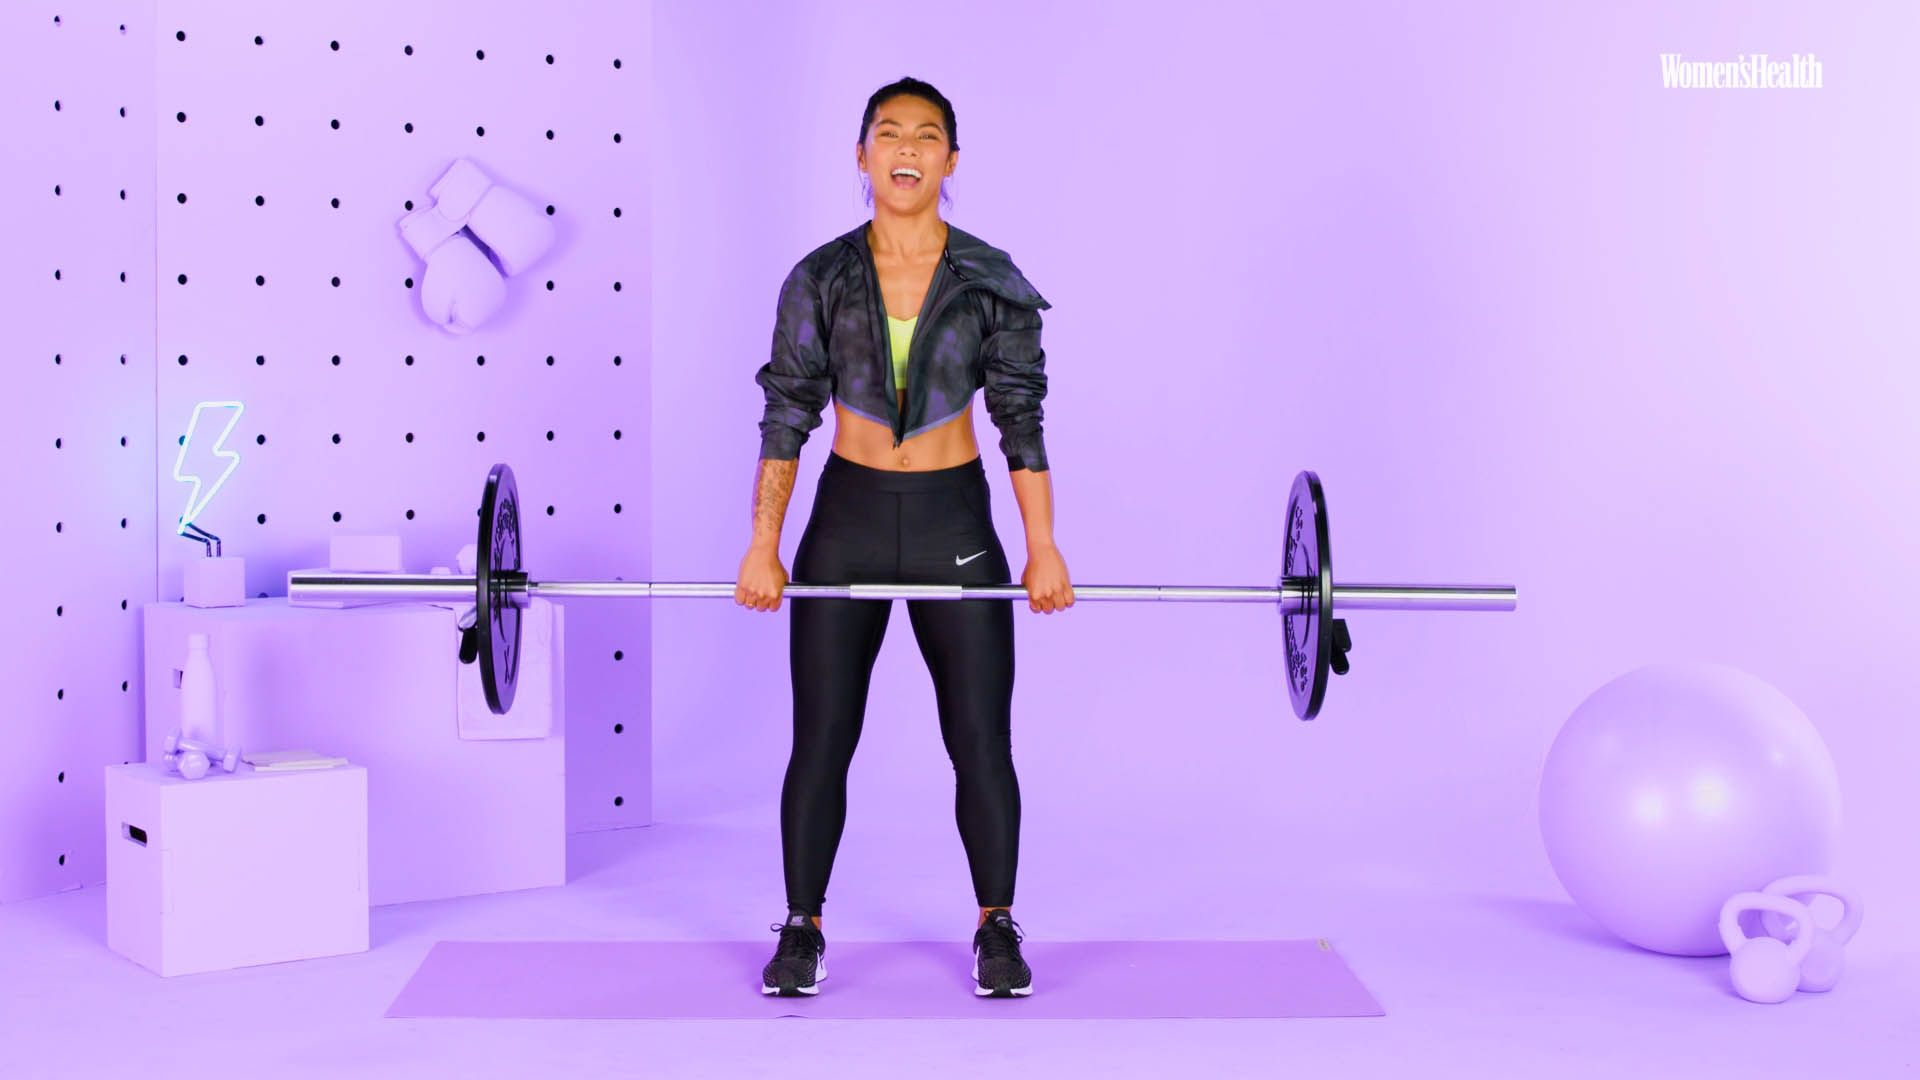 How To Deadlift Like You Know What You're Doing